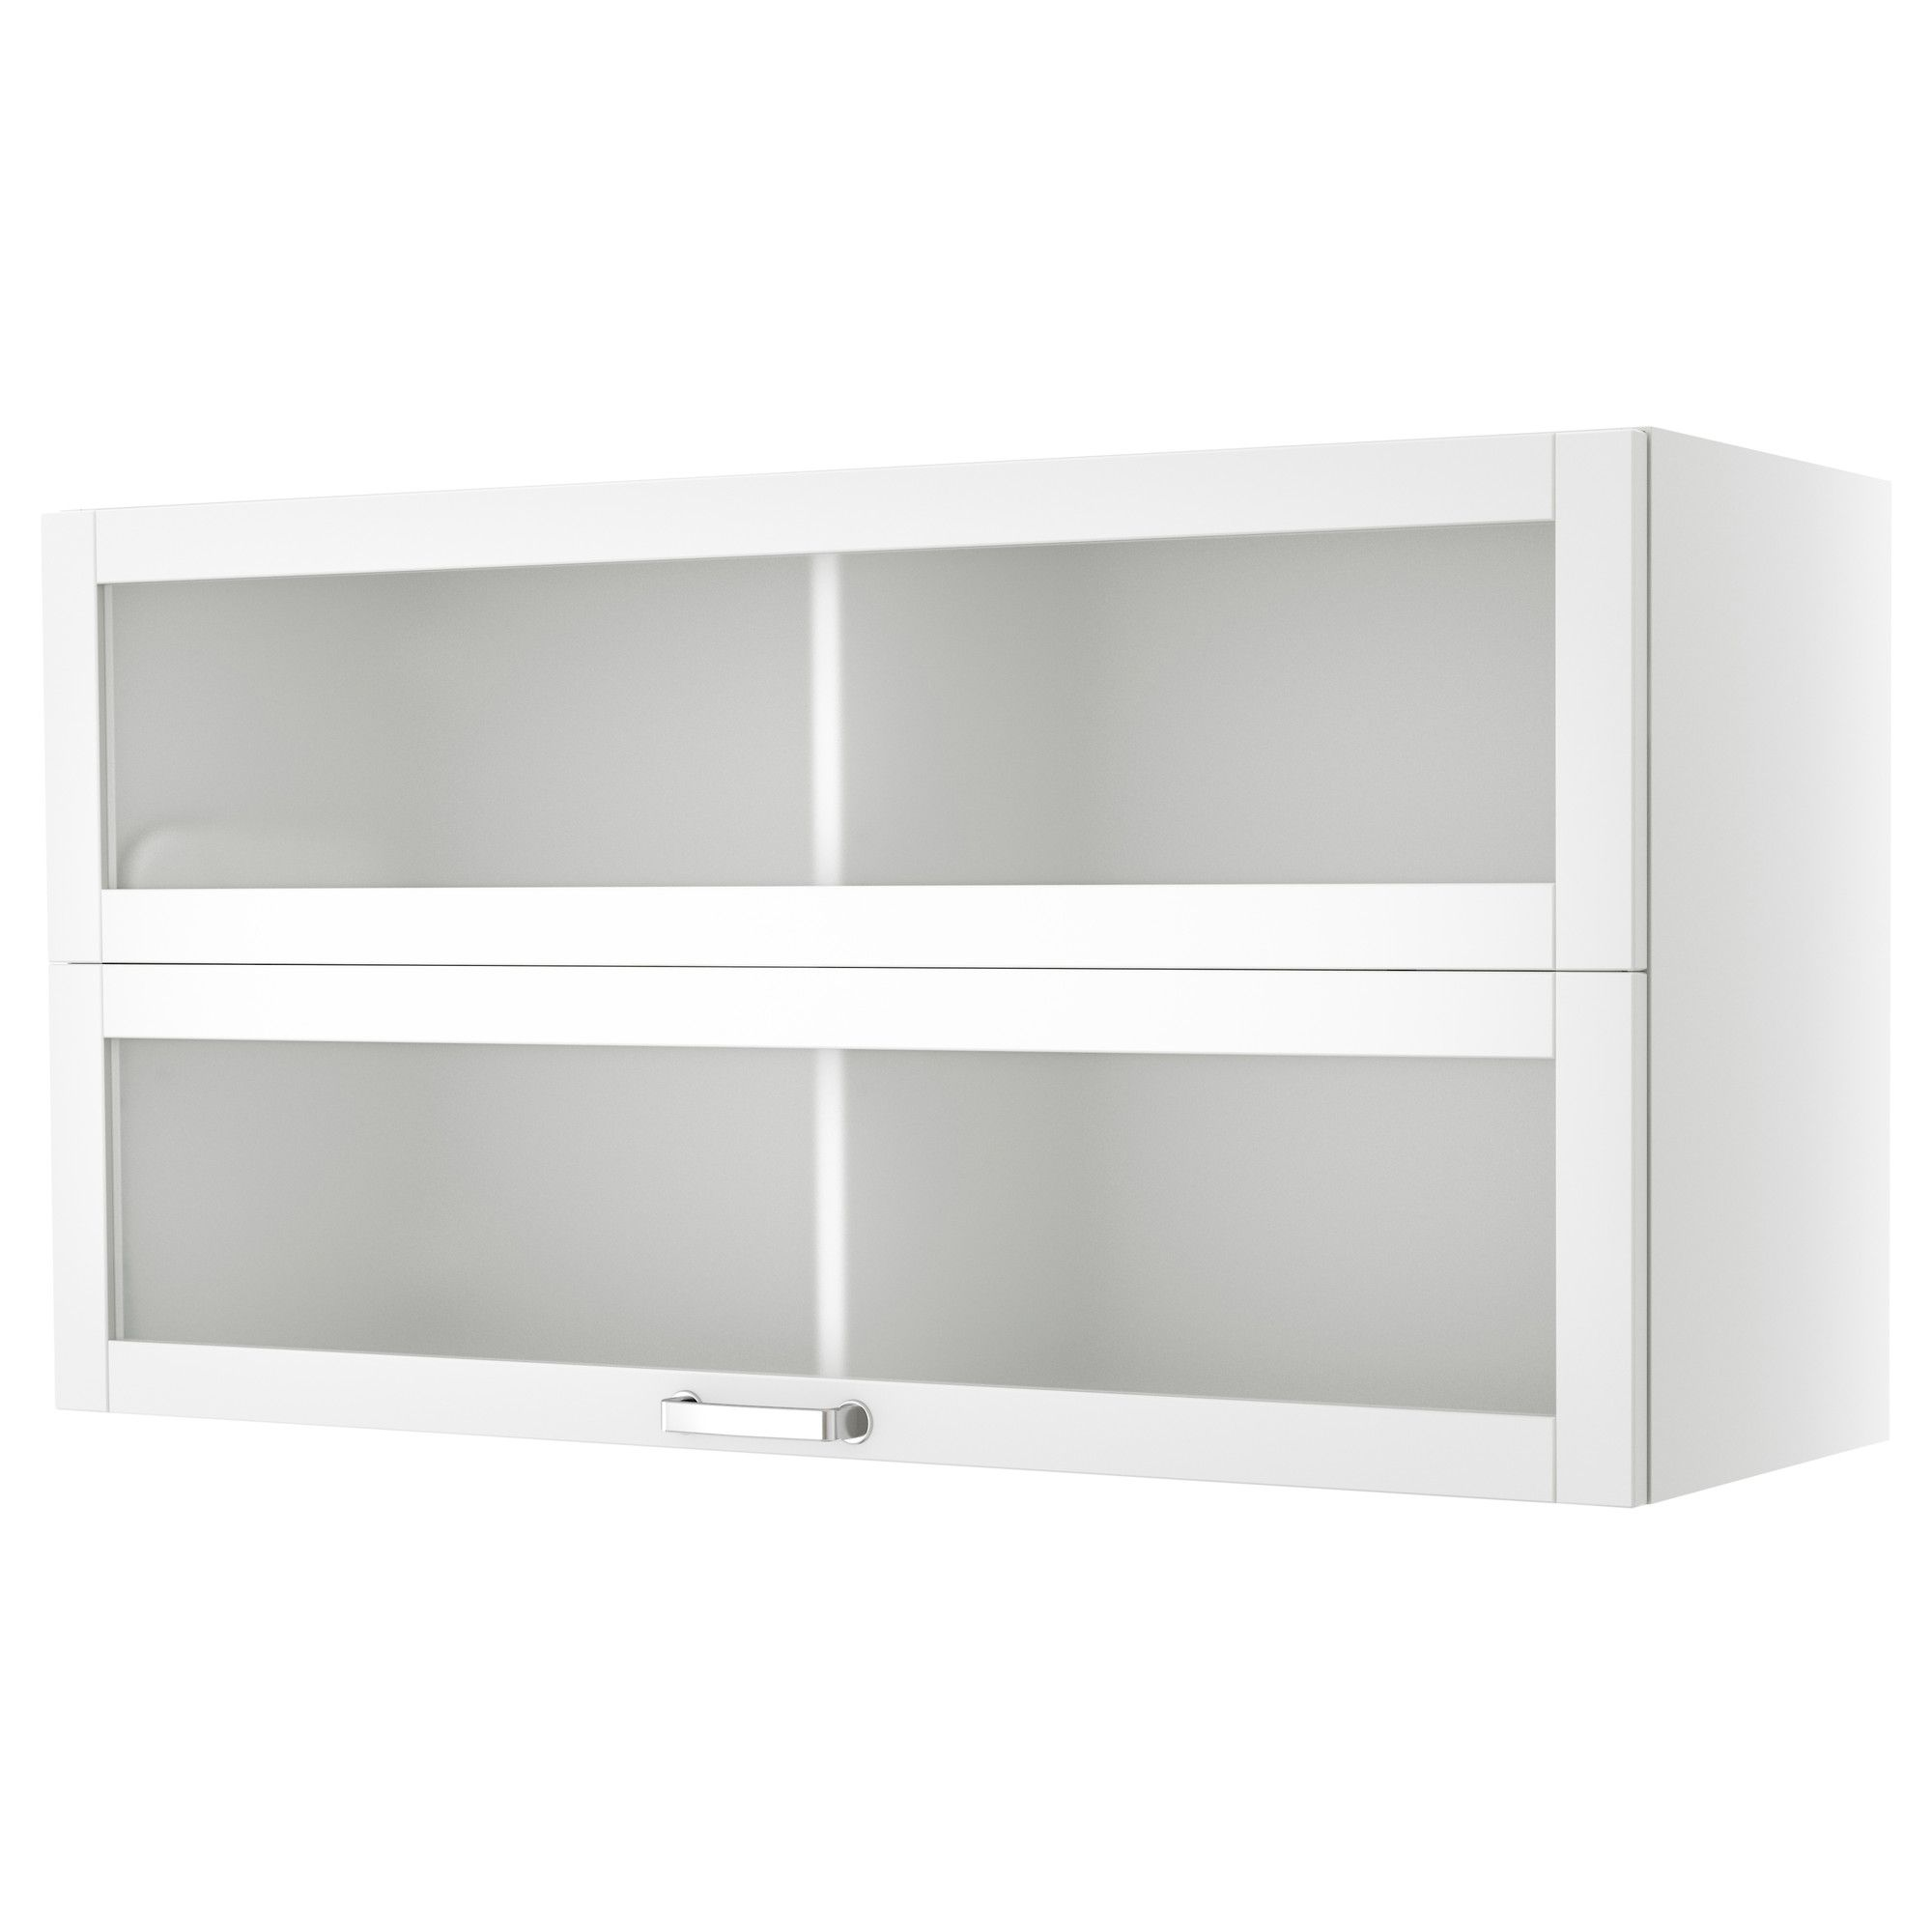 $229 VÄRDE Glass-door wall cabinet - white - IKEA Width 47 1/4   Depth 14 5/8   Height 24   Weight 78lbs  sc 1 st  Pinterest : wall cabinet ikea - Cheerinfomania.Com